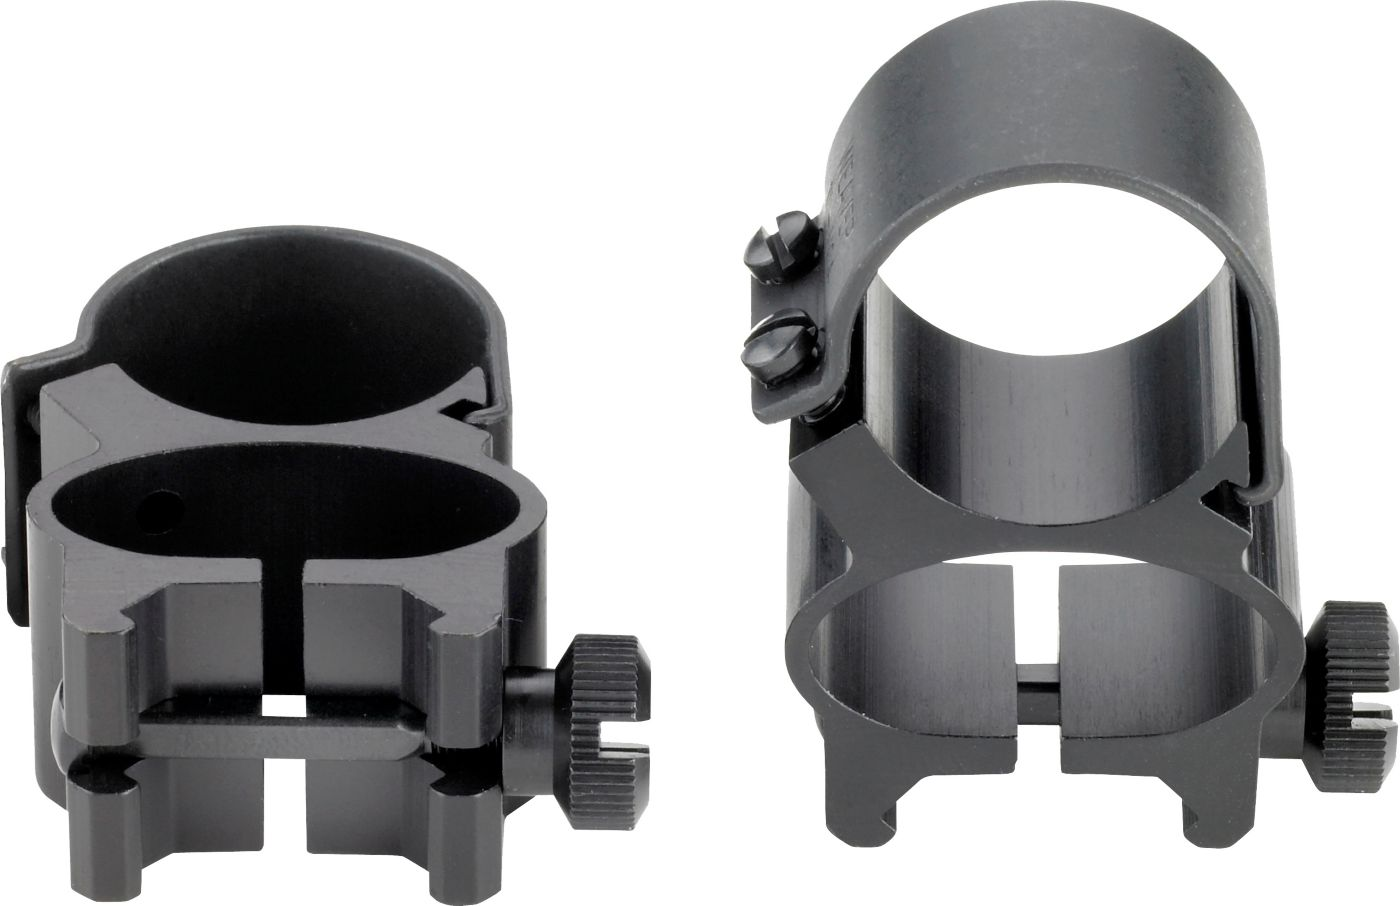 Weaver See Through Top Mount 1 Inch High Scope Rings